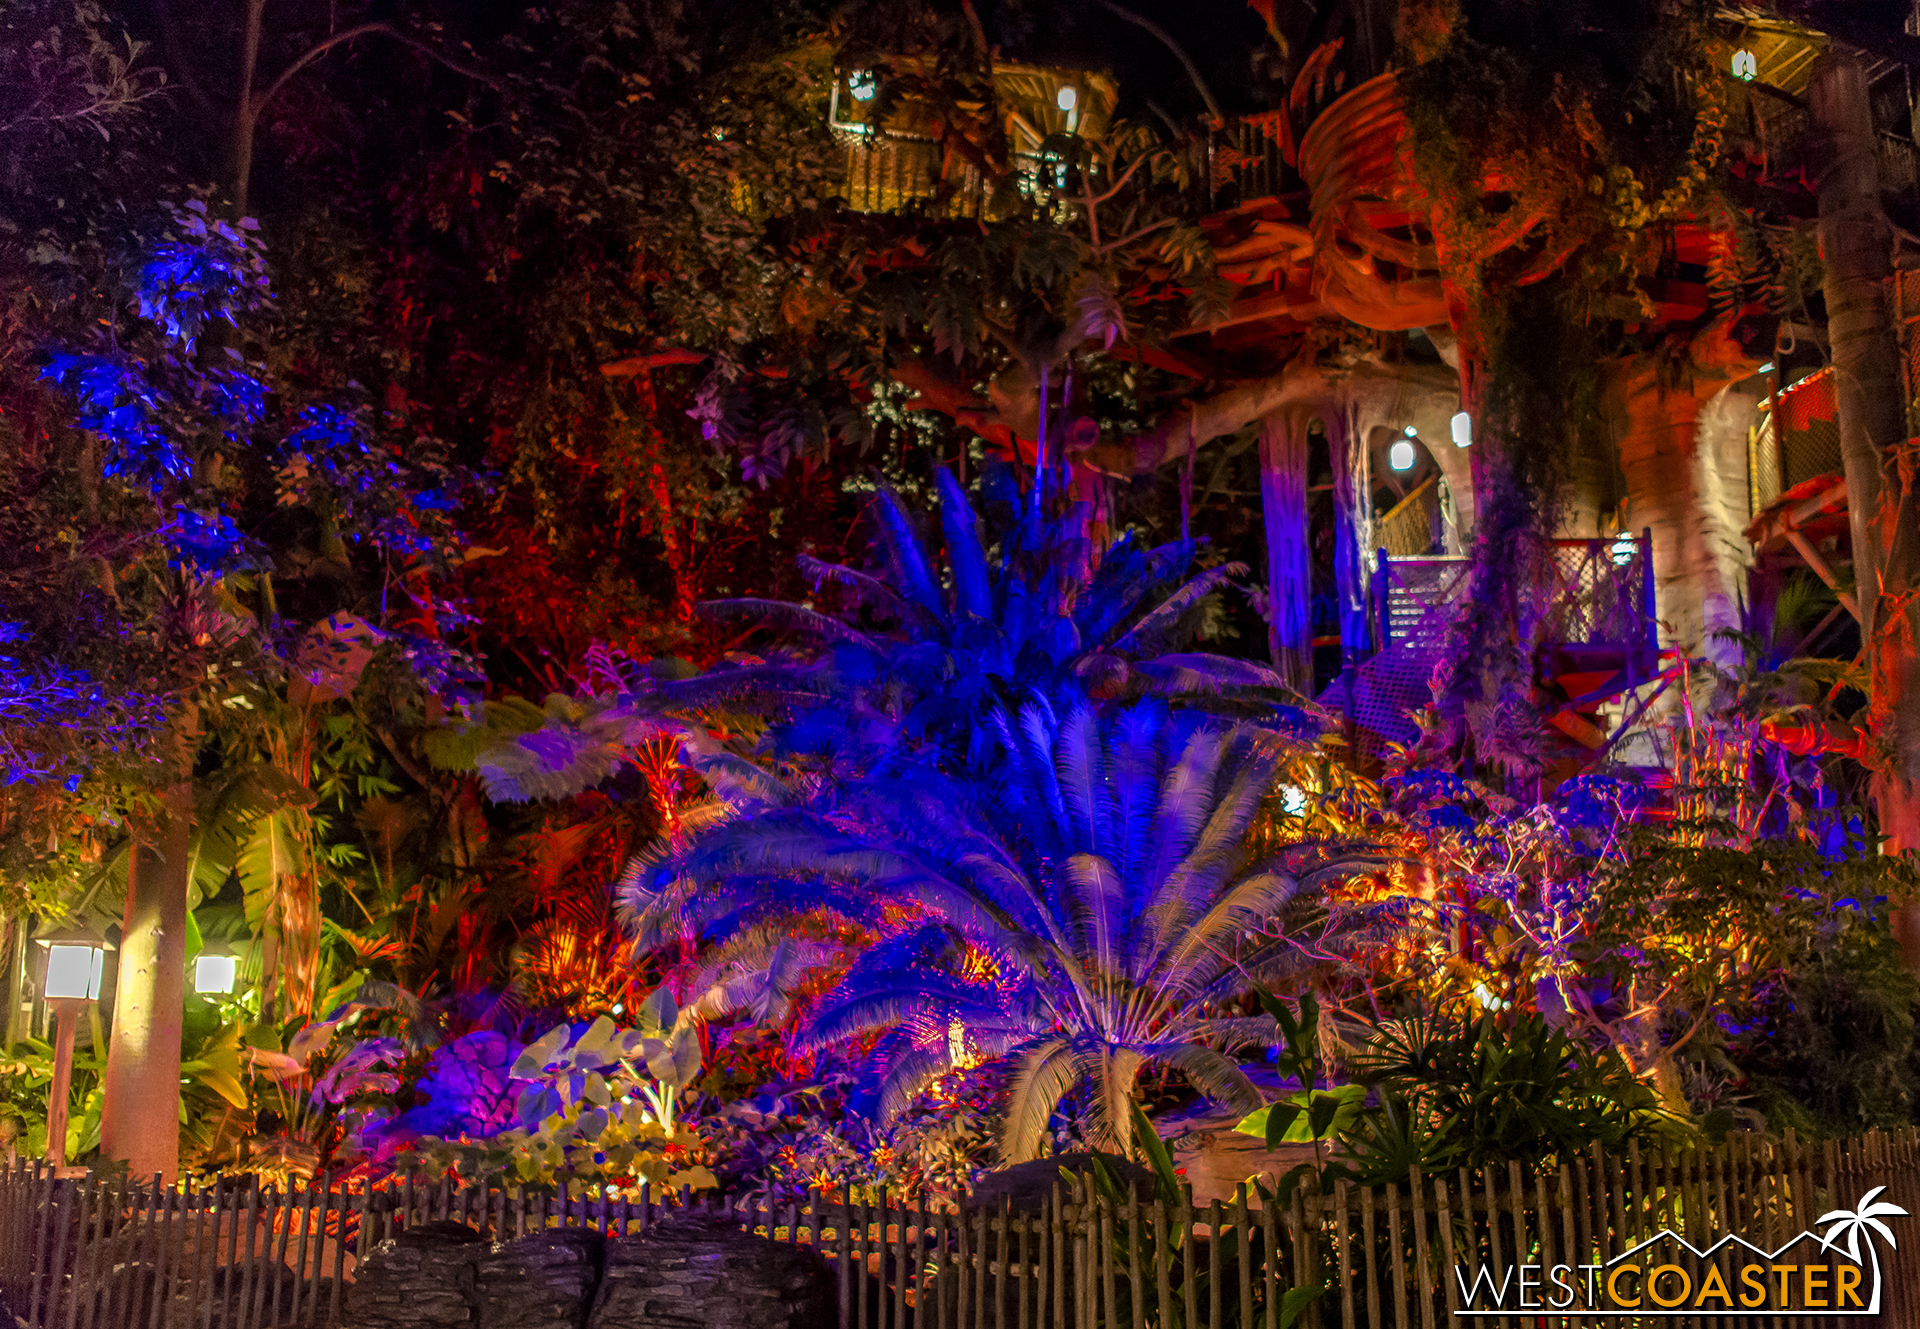 At Tarzan's Treehouse, a slow-cycling colored lighting show illuminate the foliage, accompanied by sporadic lightning and ominous sound effects.